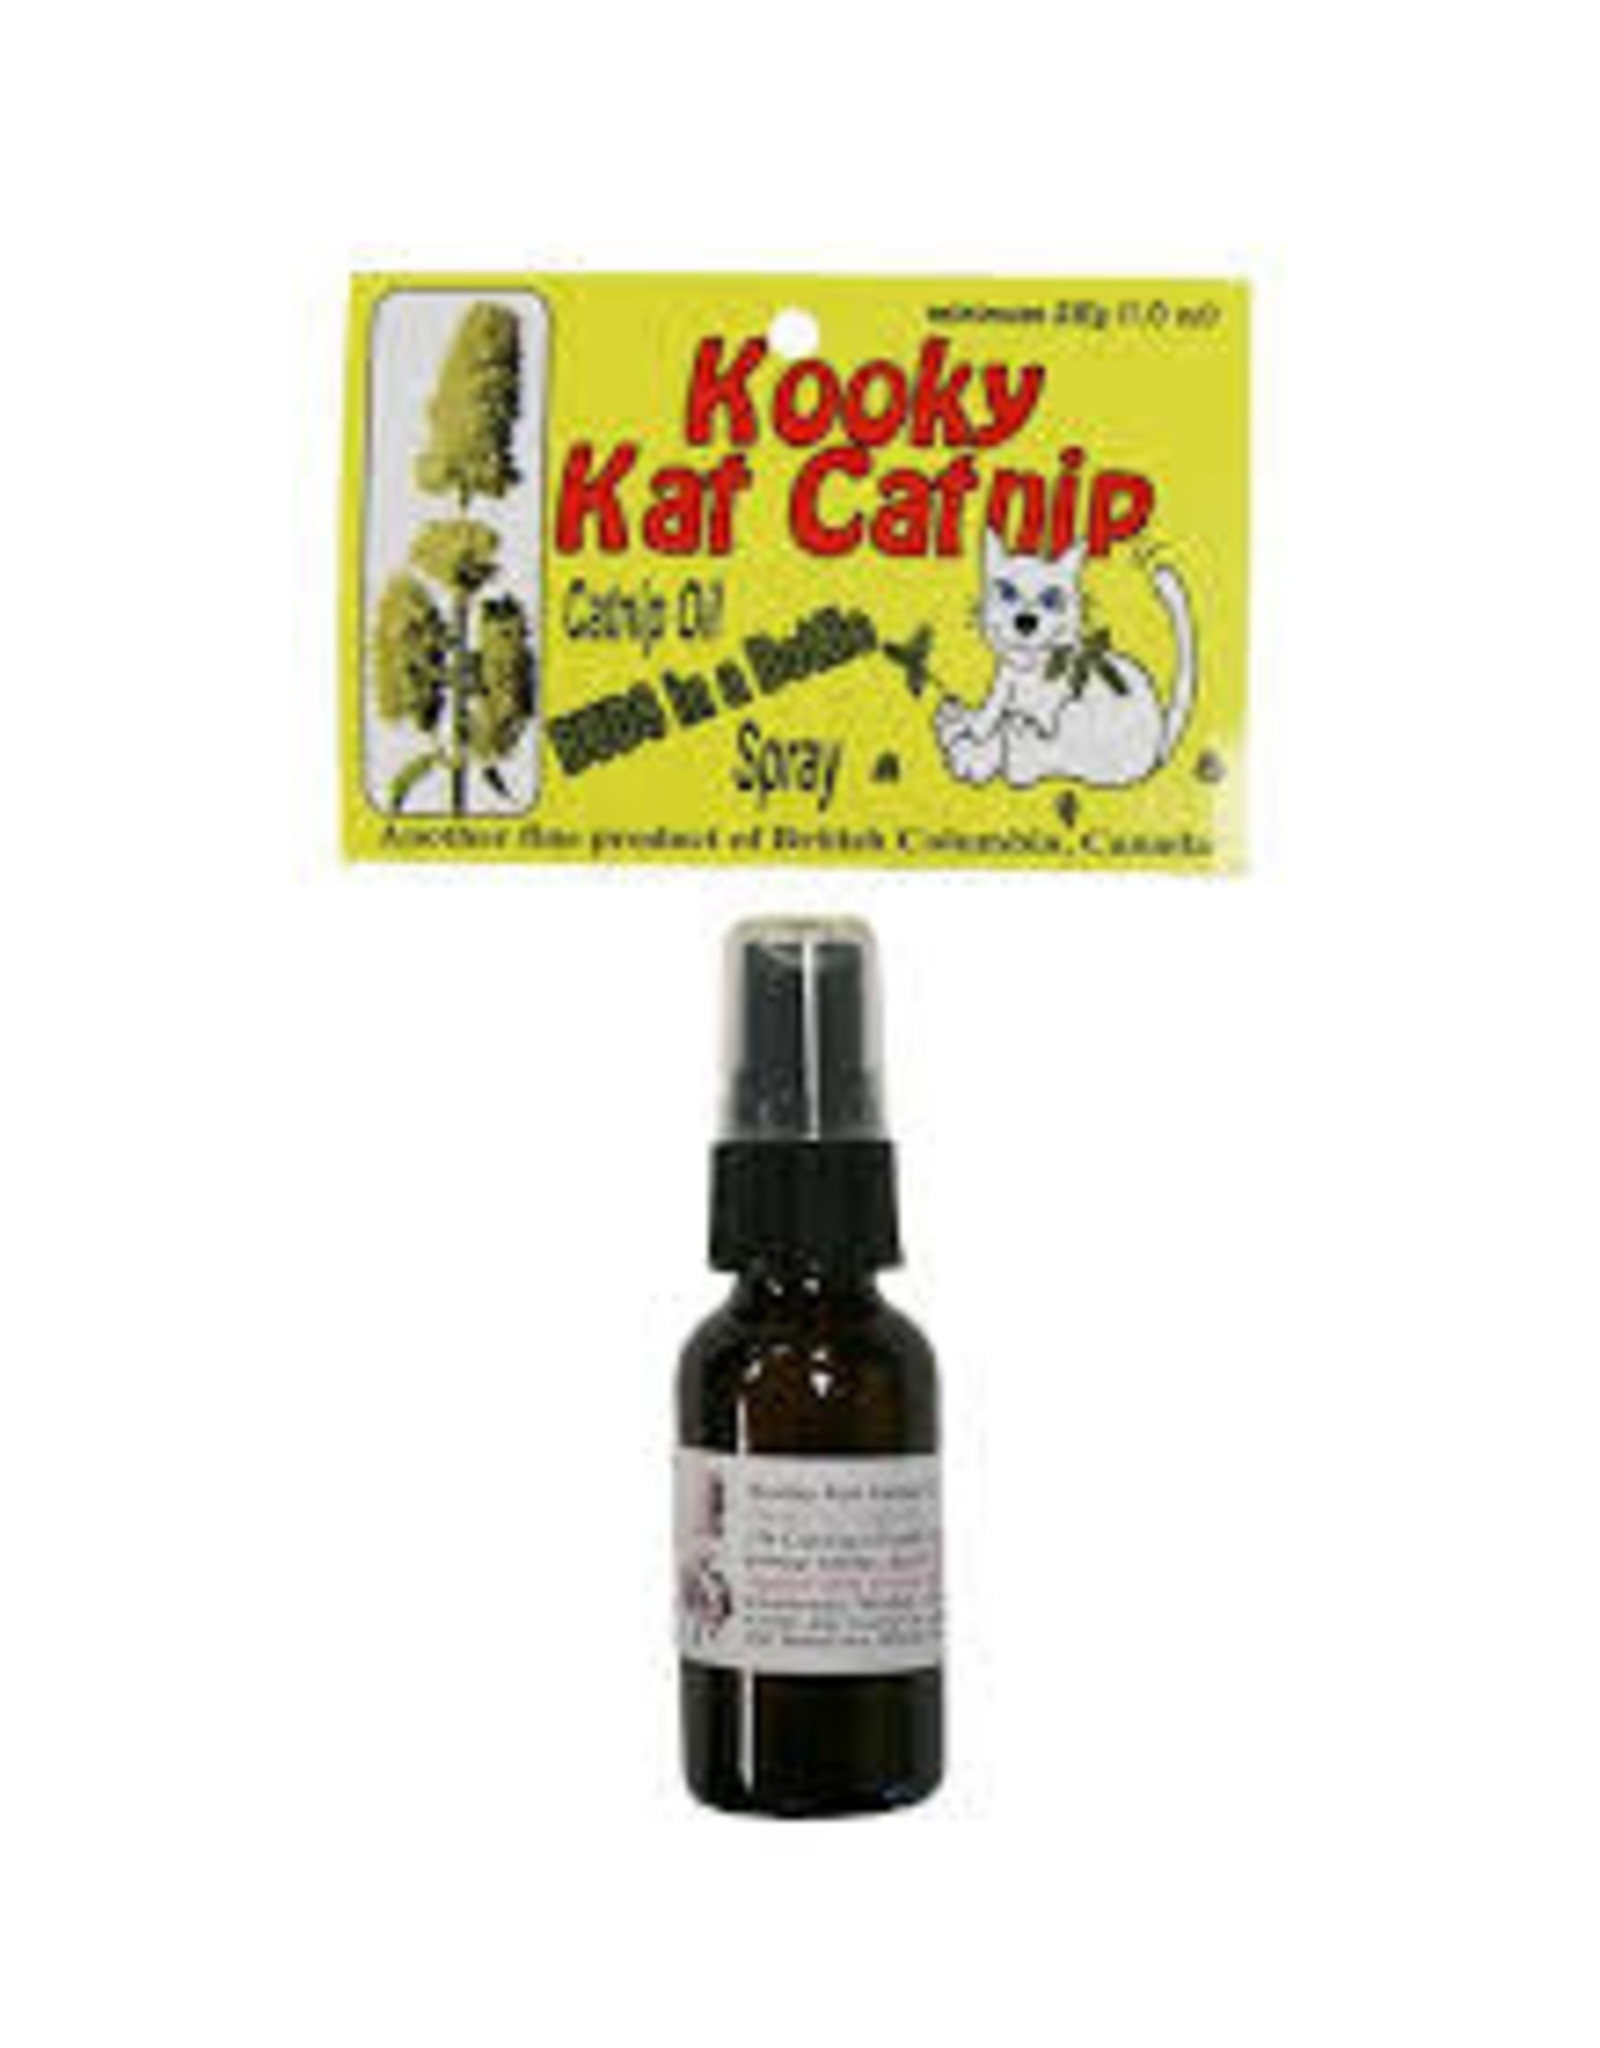 Kooky Kat Catnip Kooky Cat Catnip - Budz in a Bottle 1% Catnip Oil Spray 28ml